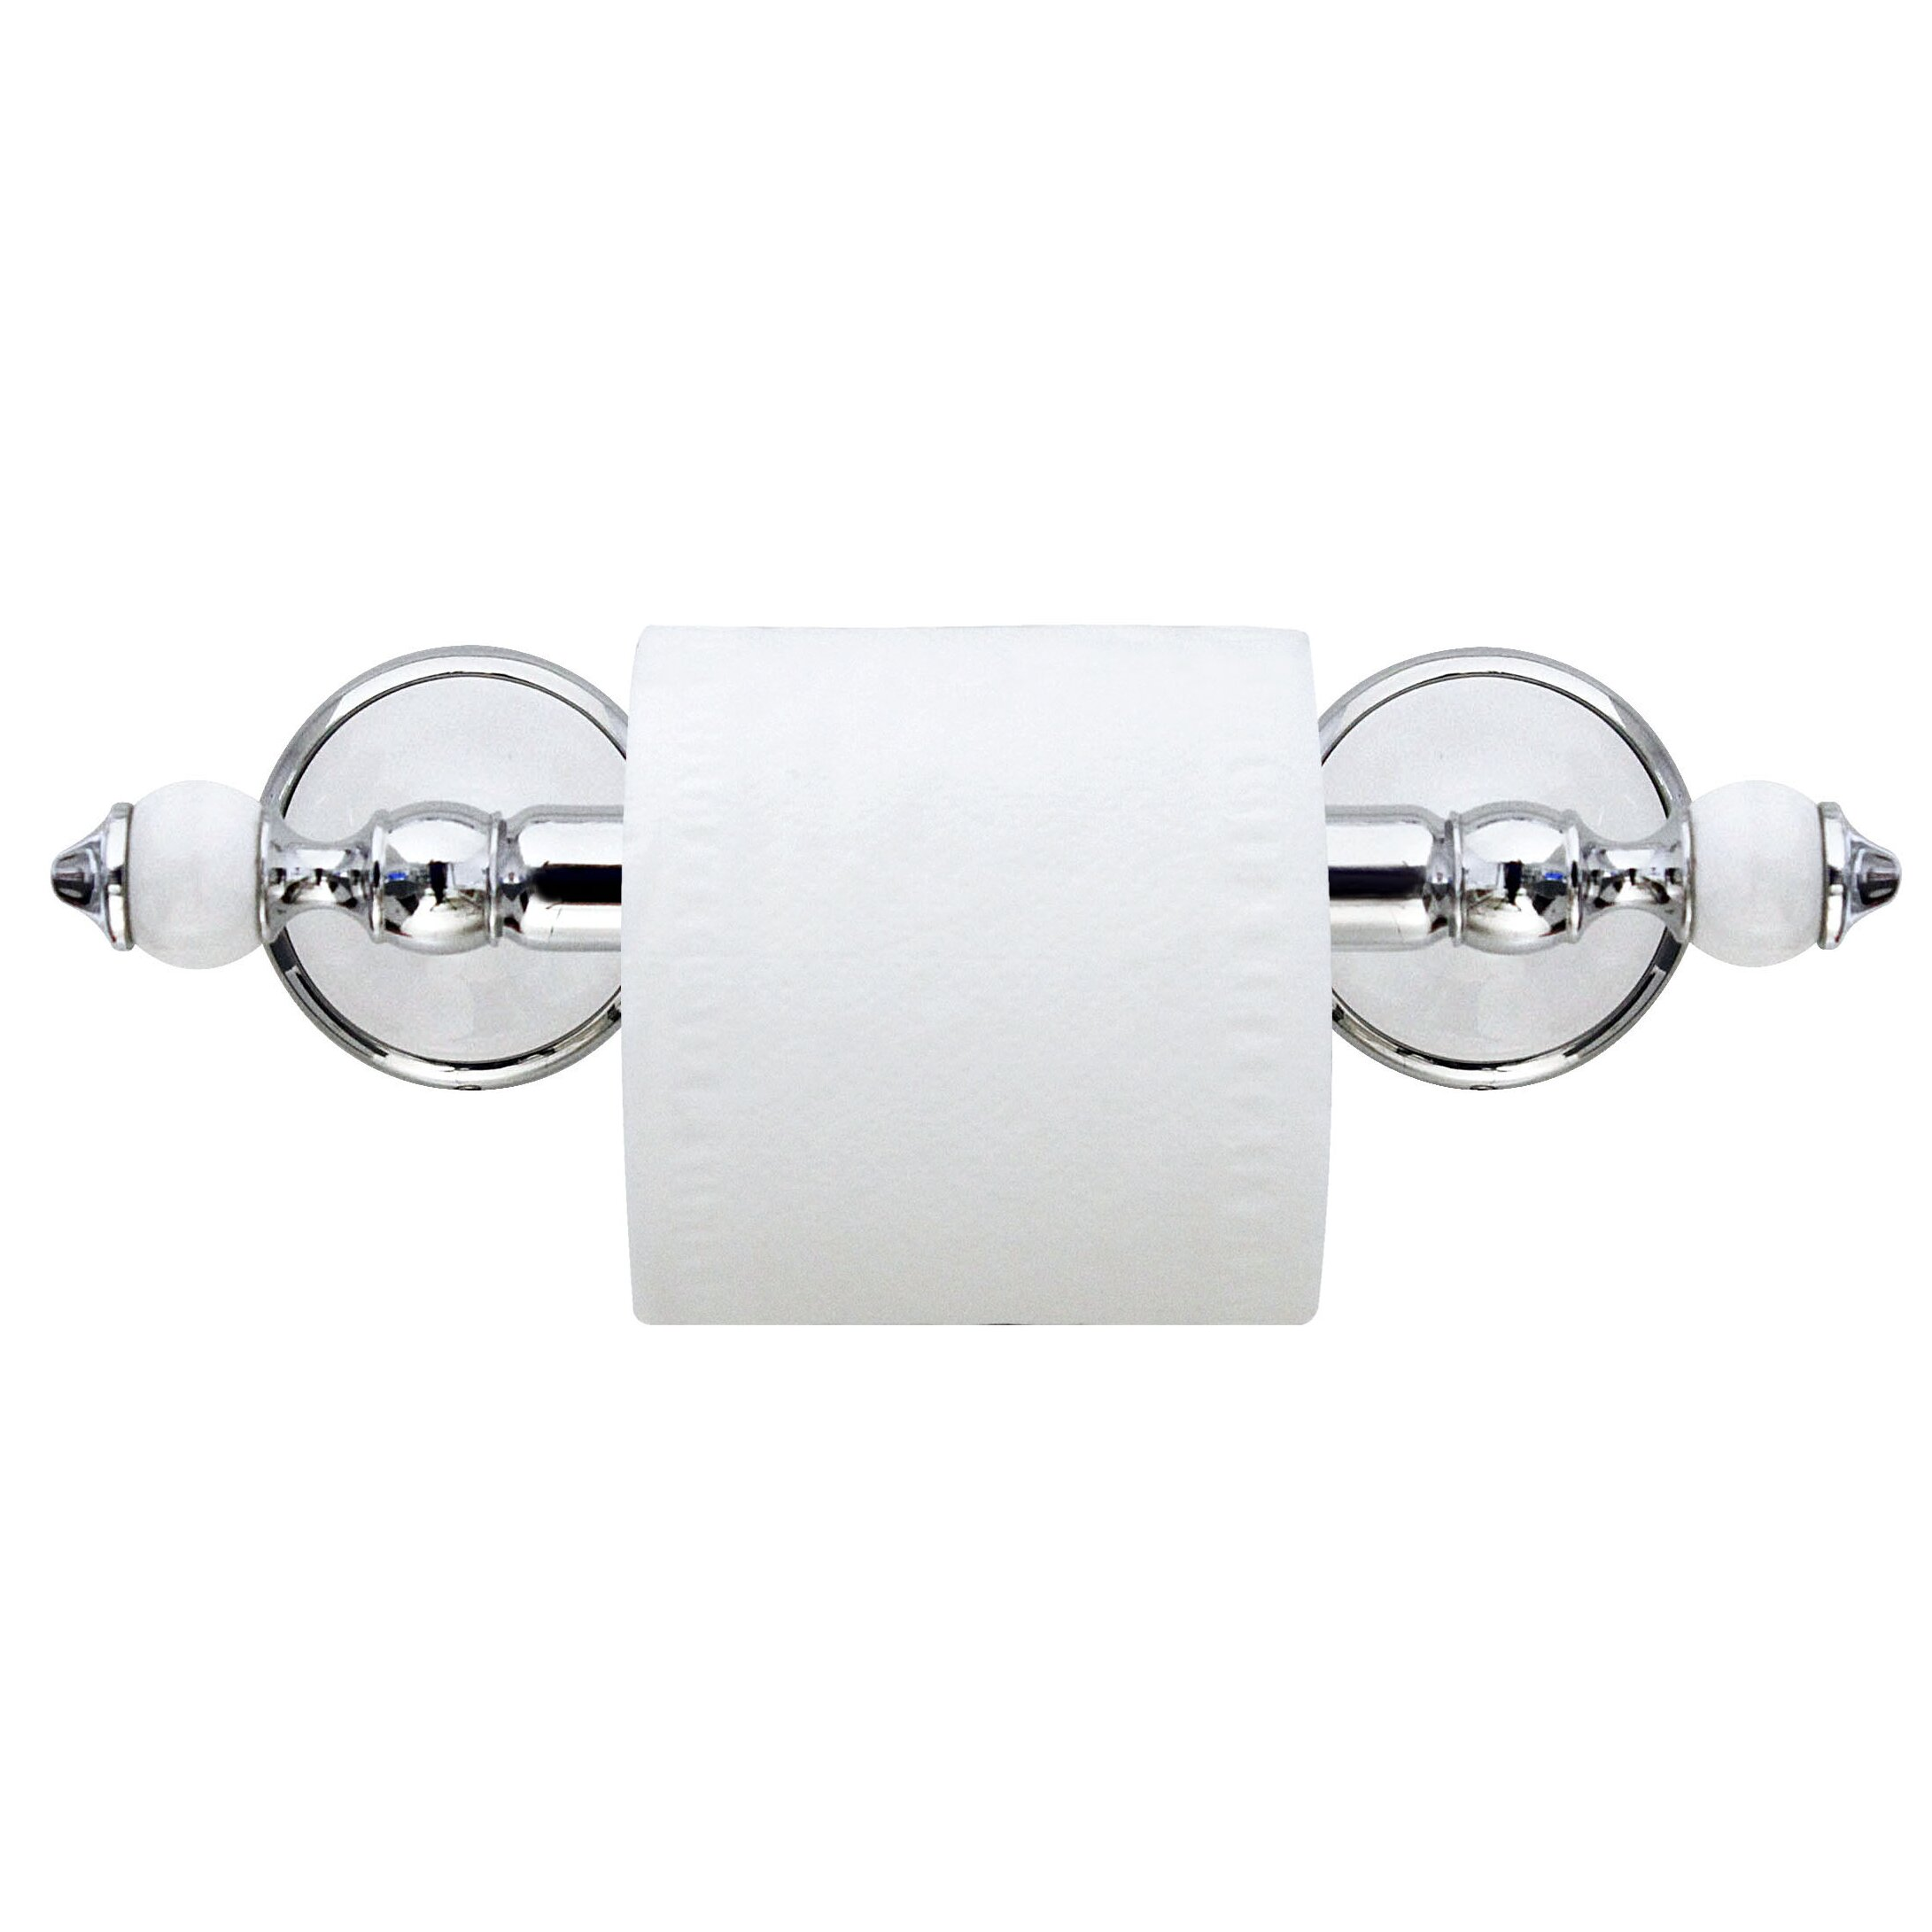 Modona Arora Wall Mounted Toilet Paper Holder Wayfair